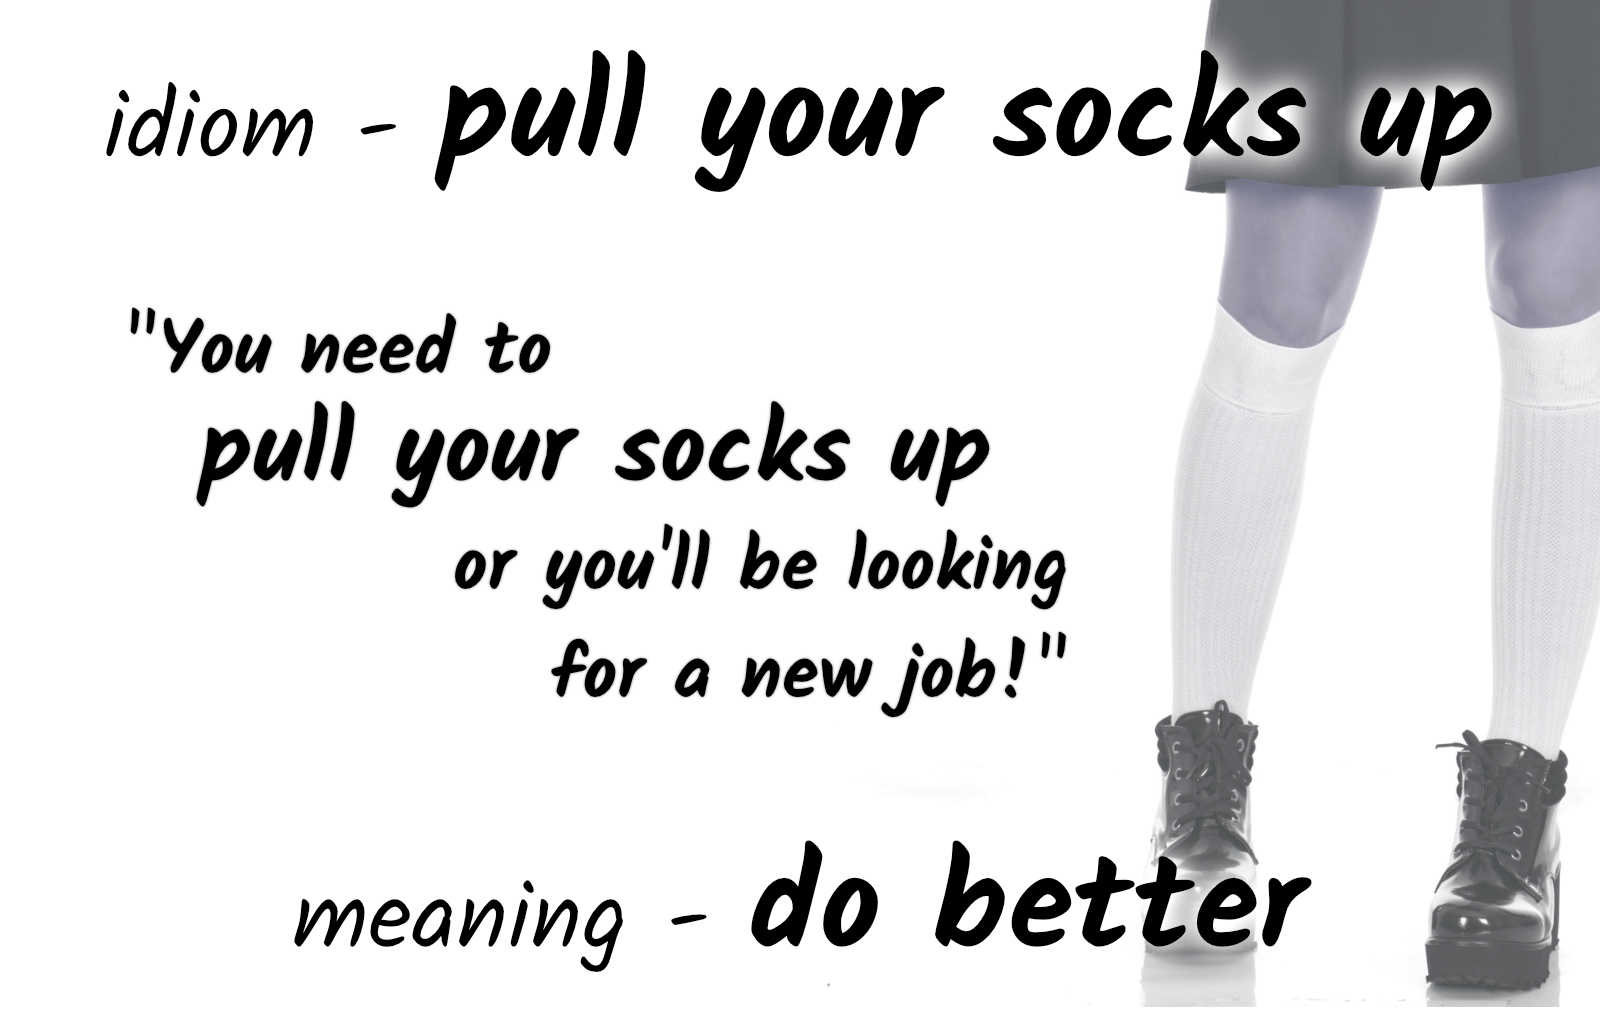 idiom-pull-your-socks-up